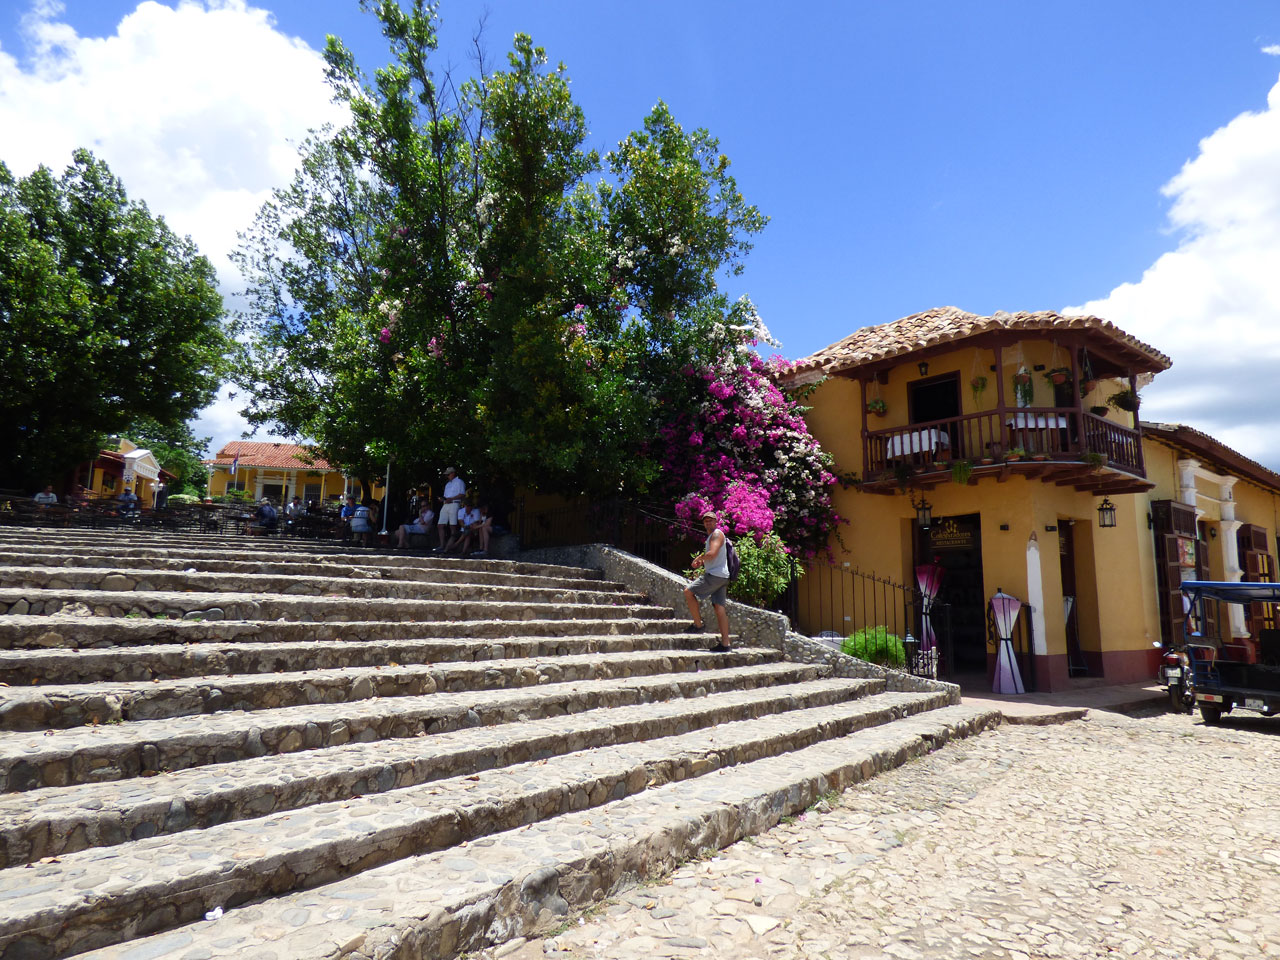 Steps outside the Casa de la Música in Trinidad, Cuba